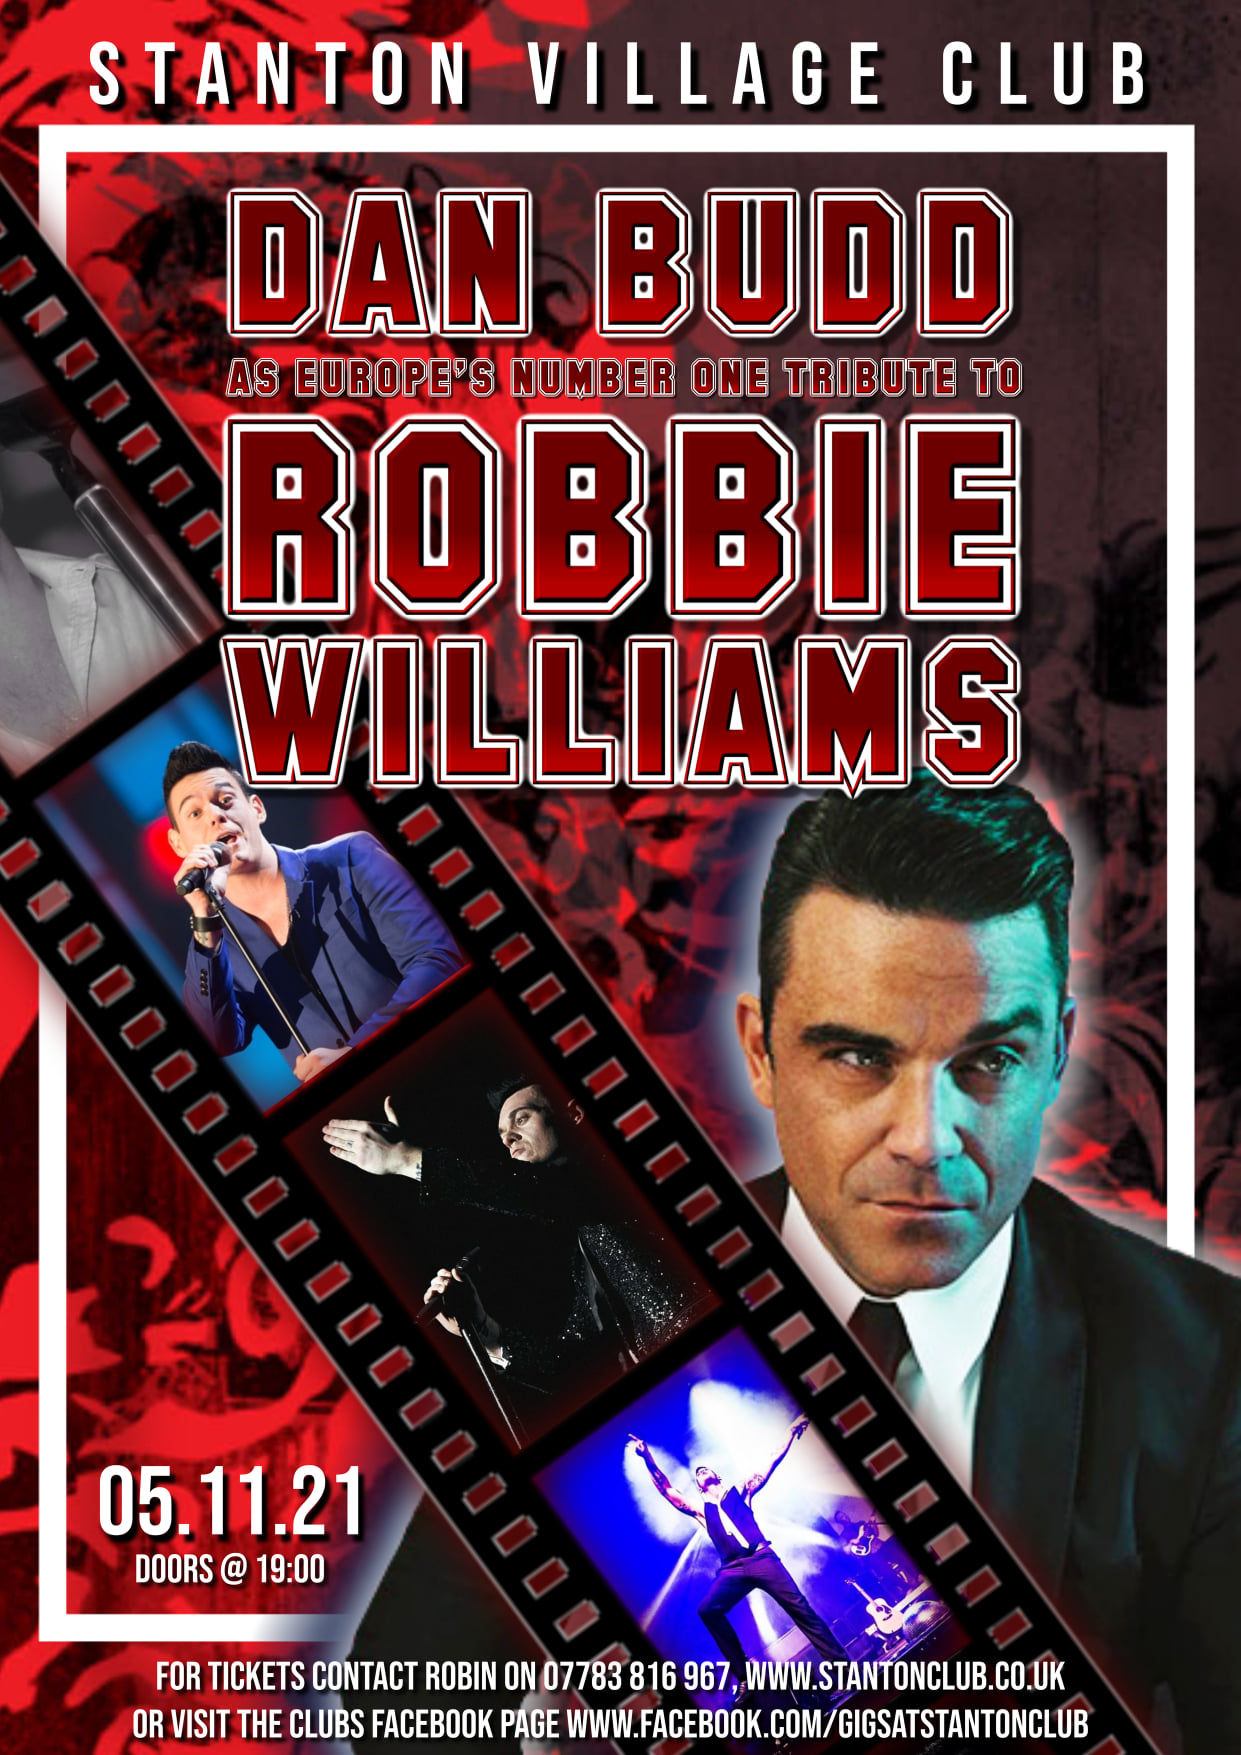 Worcestershire live music with Dann Budd as Robbie Williams